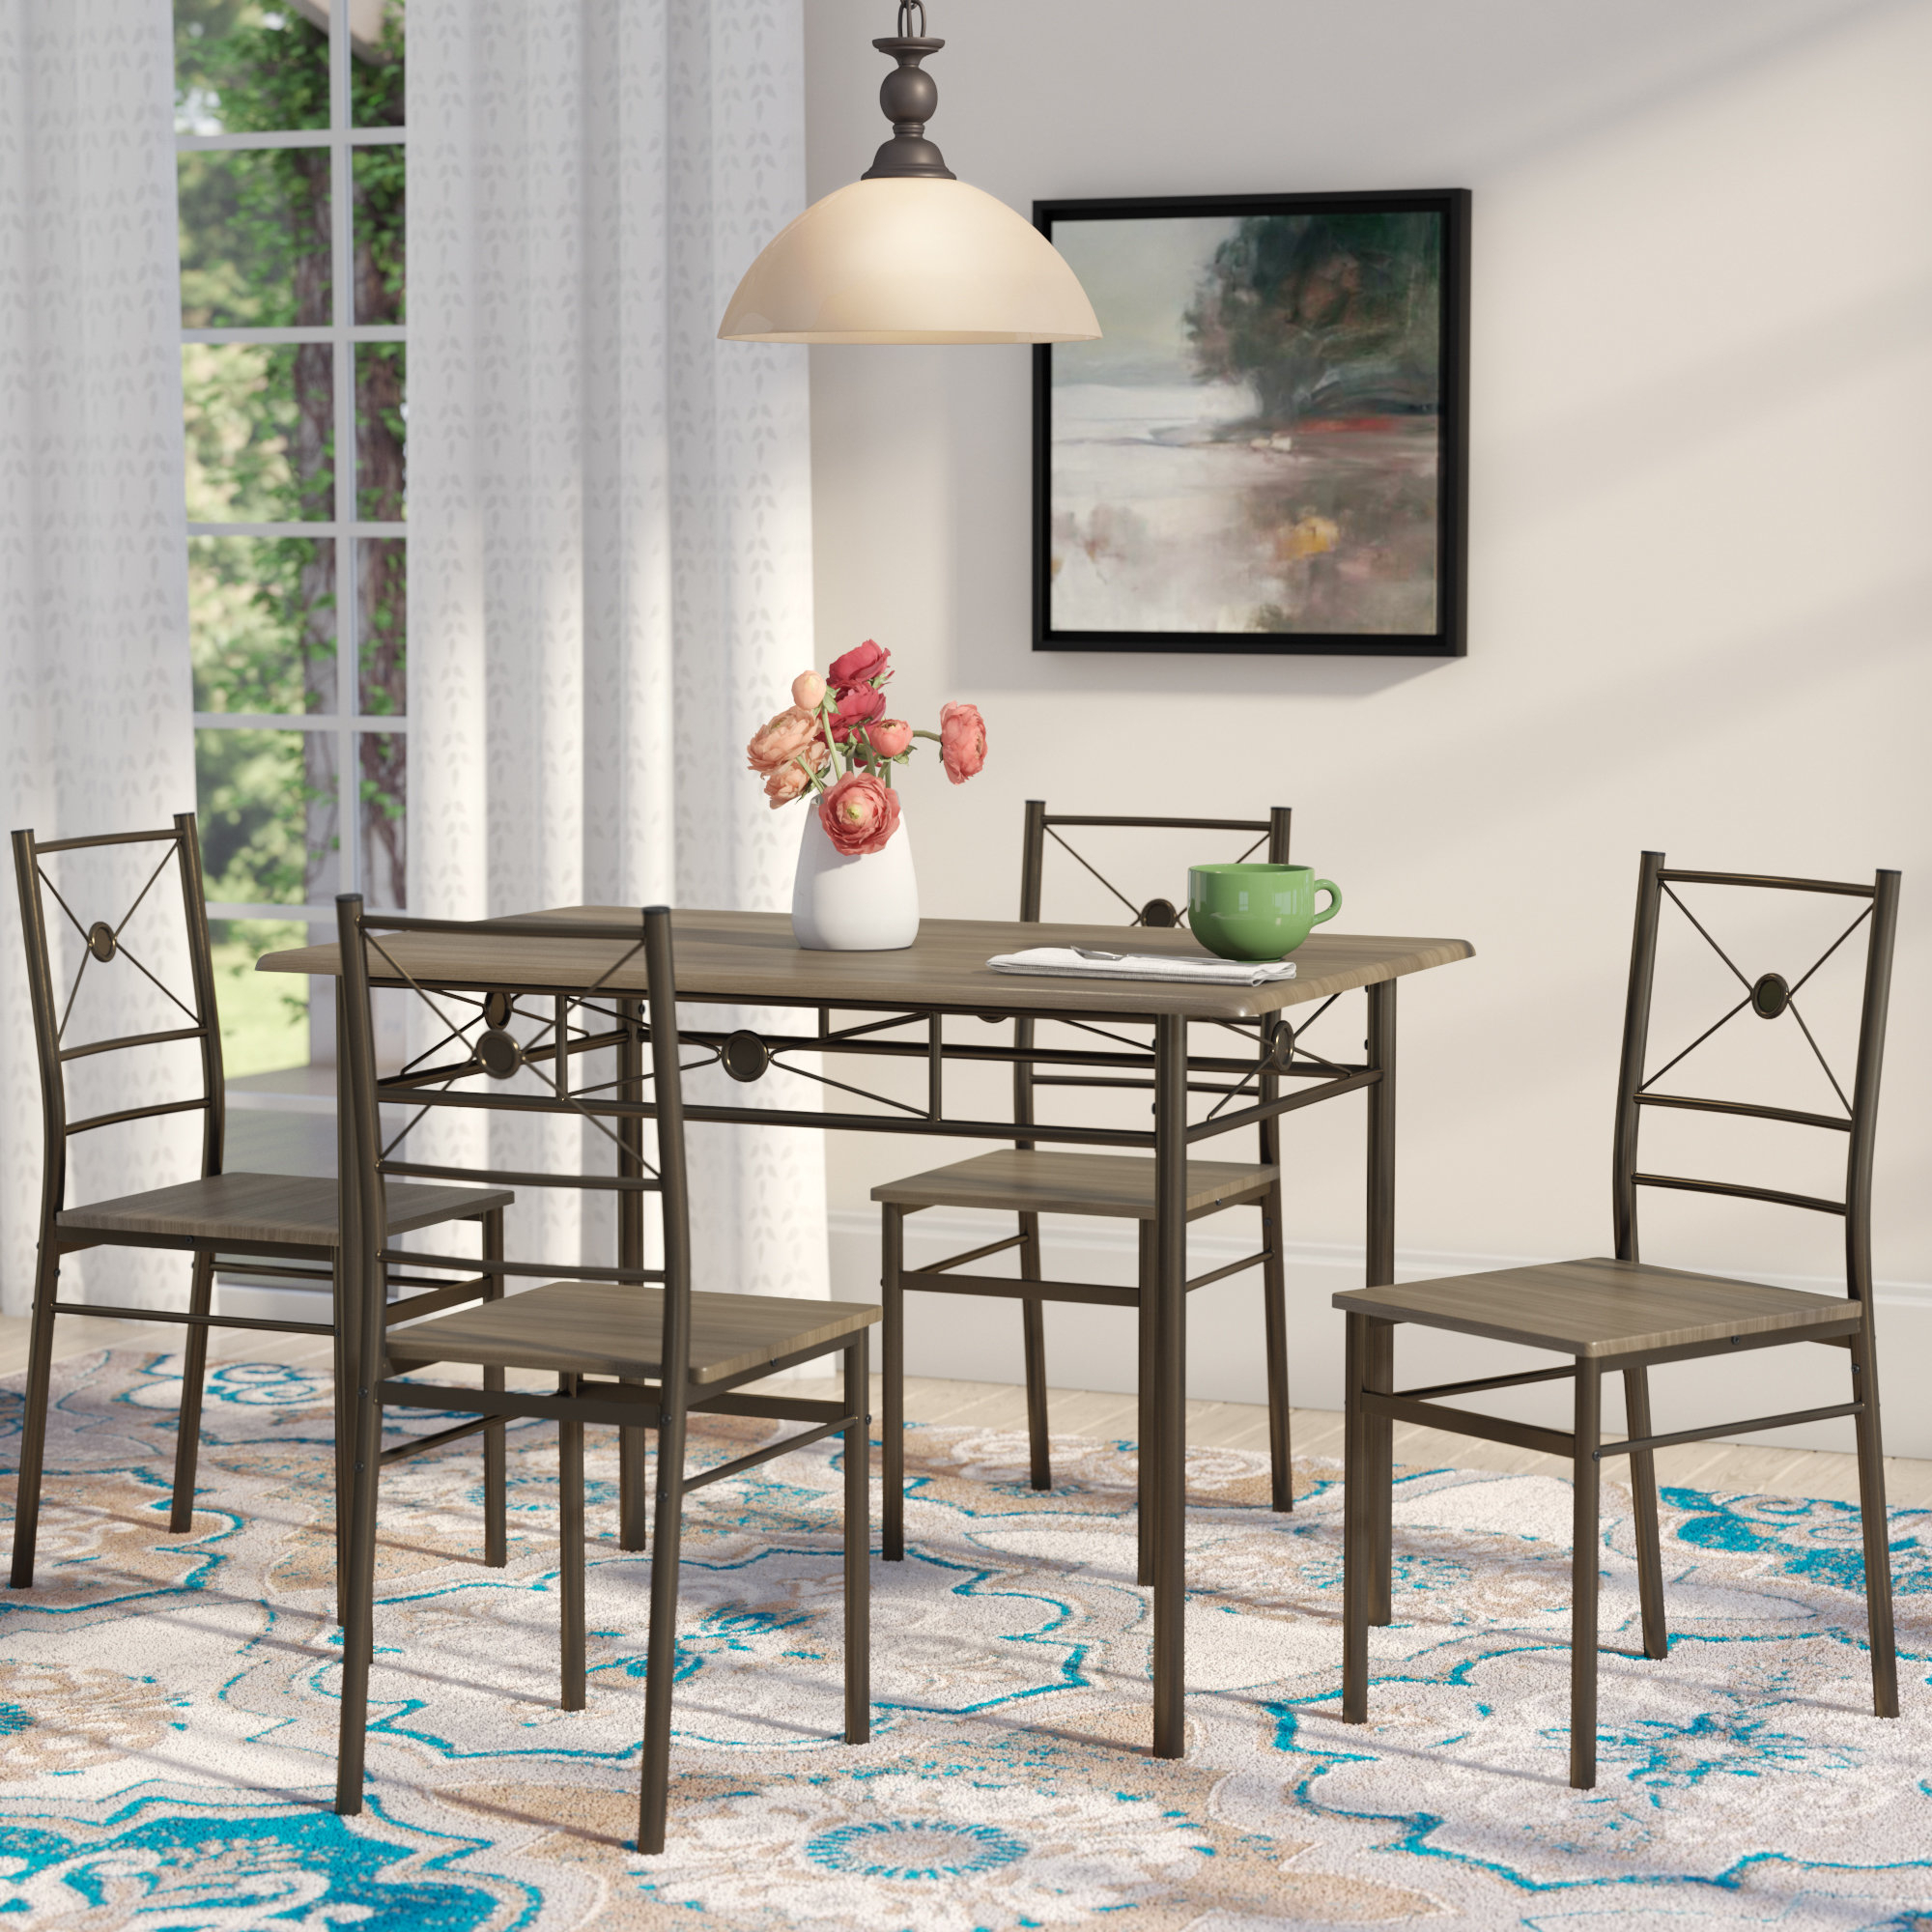 Kieffer 5 Piece Dining Set In Current Casiano 5 Piece Dining Sets (Image 11 of 20)